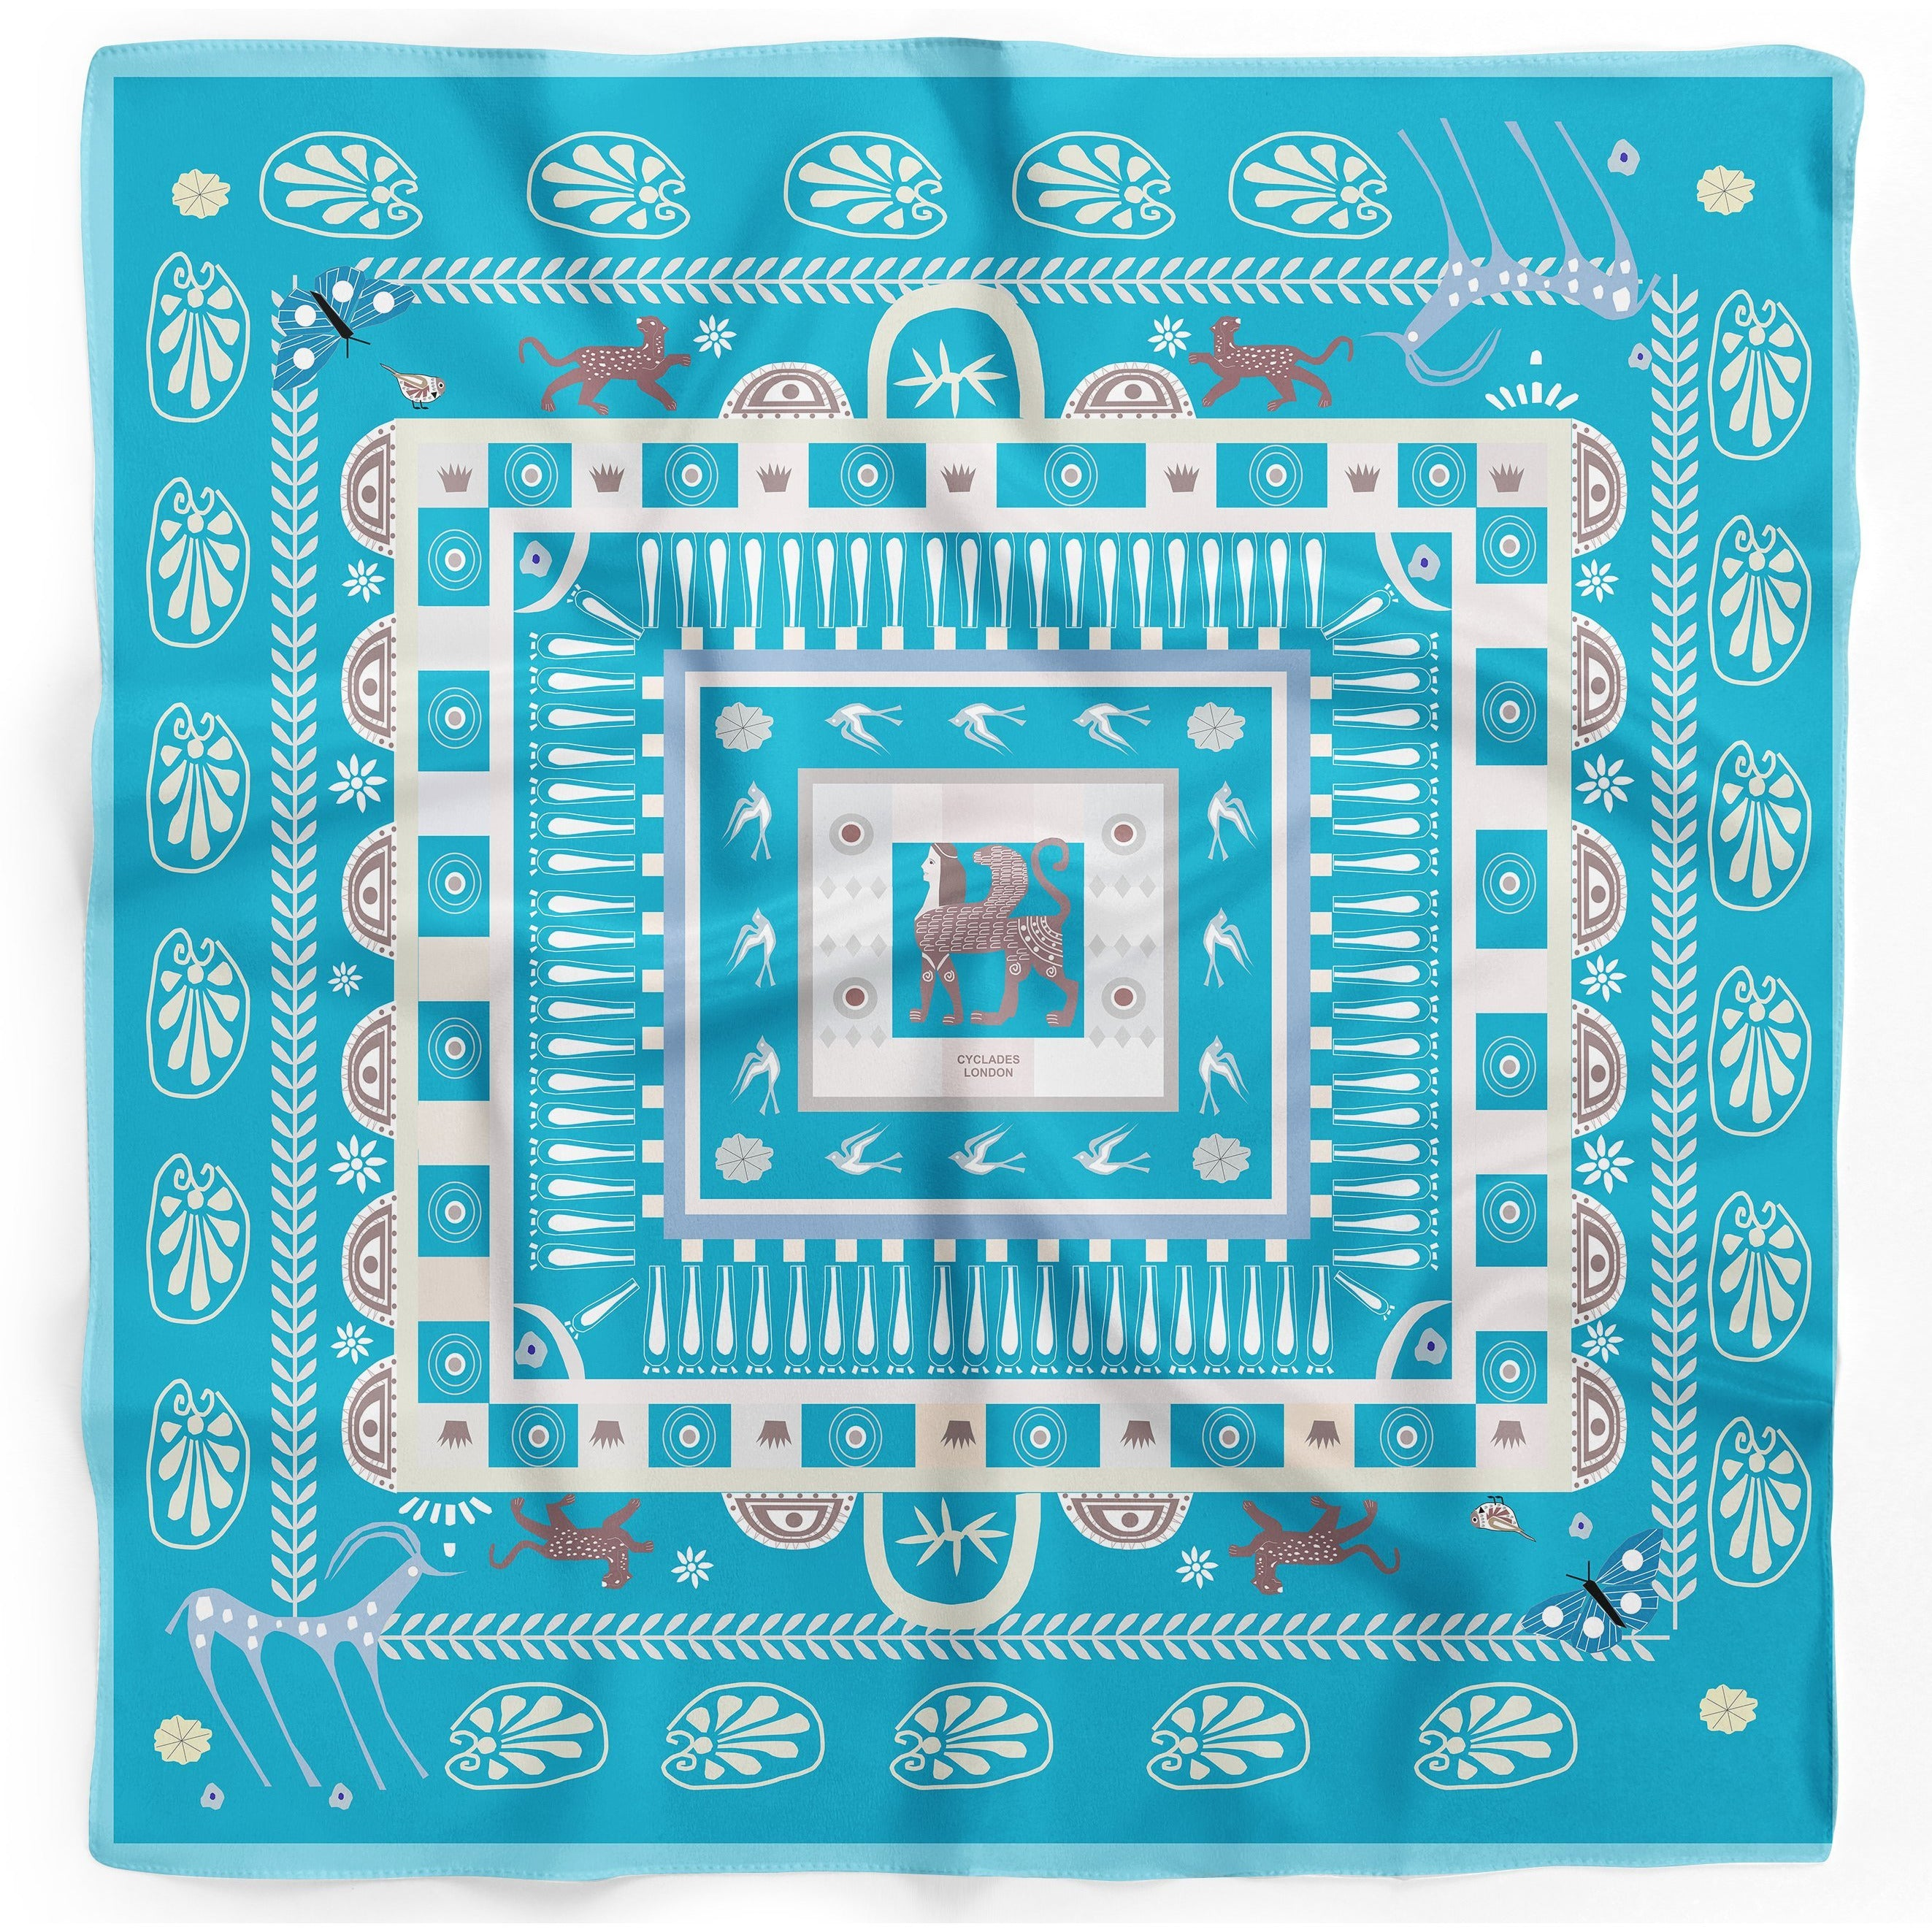 Cyclades Pocket Square Silk Scarf Midas Green Blue - natoorio